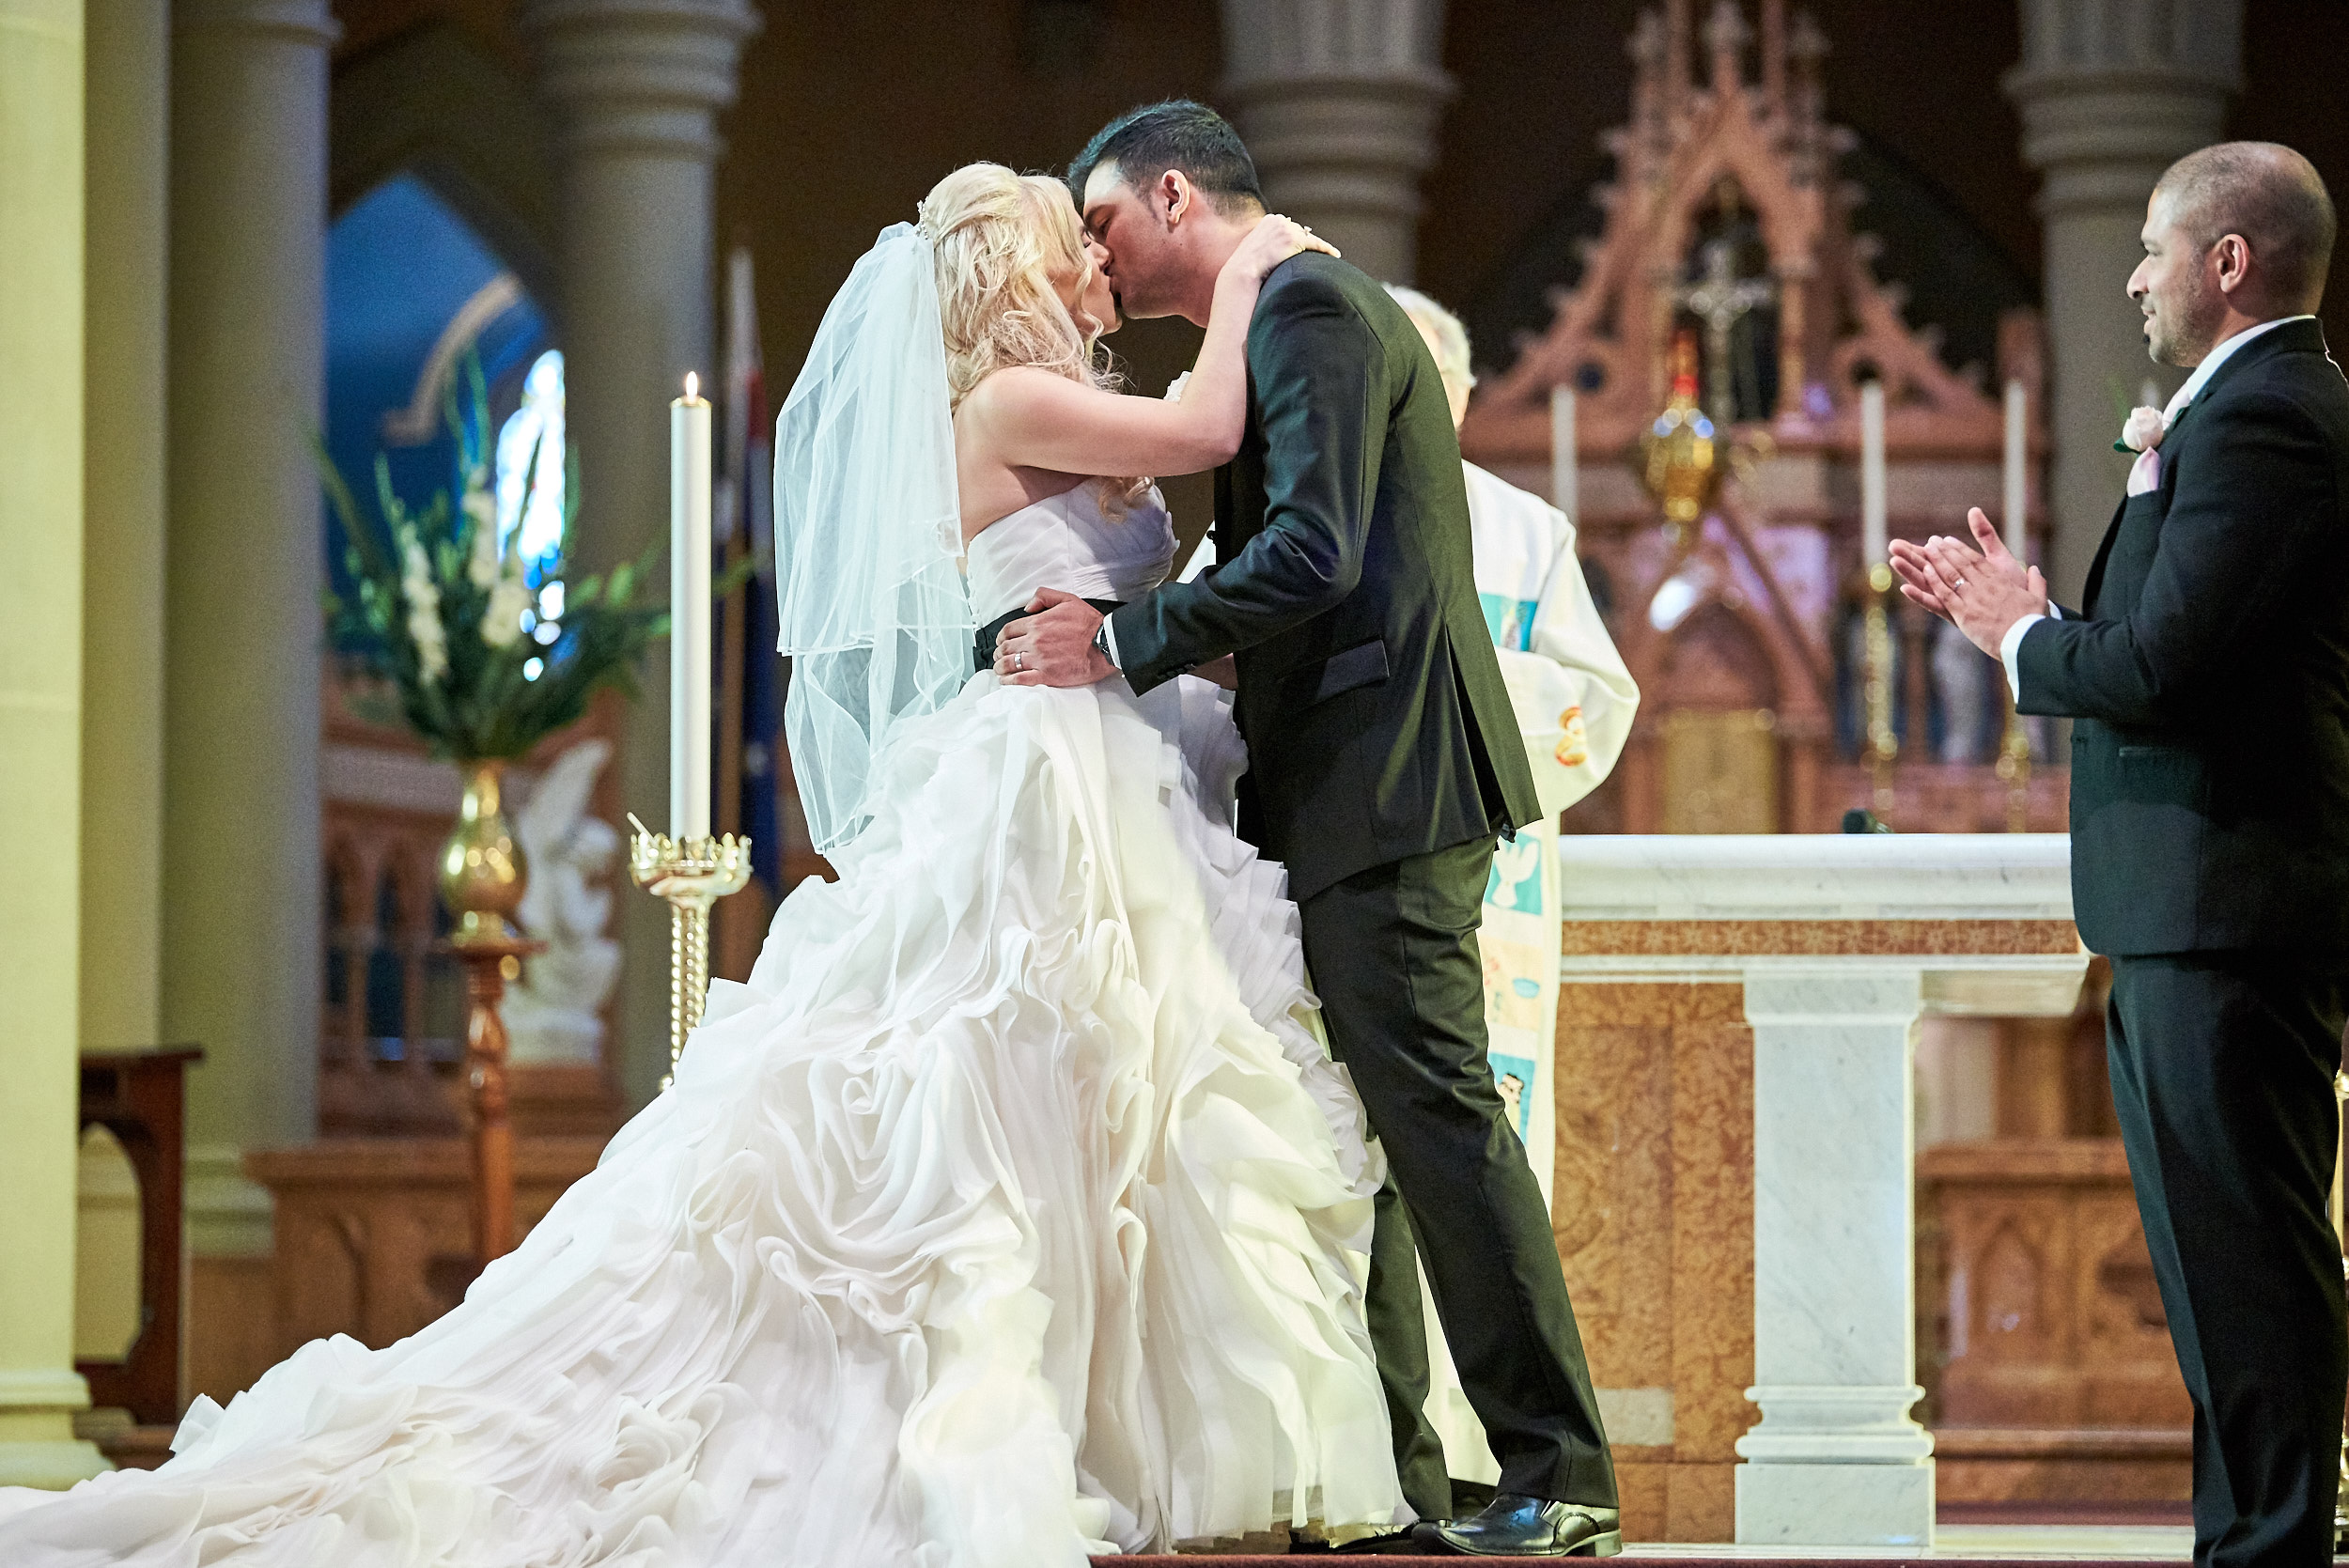 Bride and groom kissing at St Mary of the Angels Basilica in Geelong